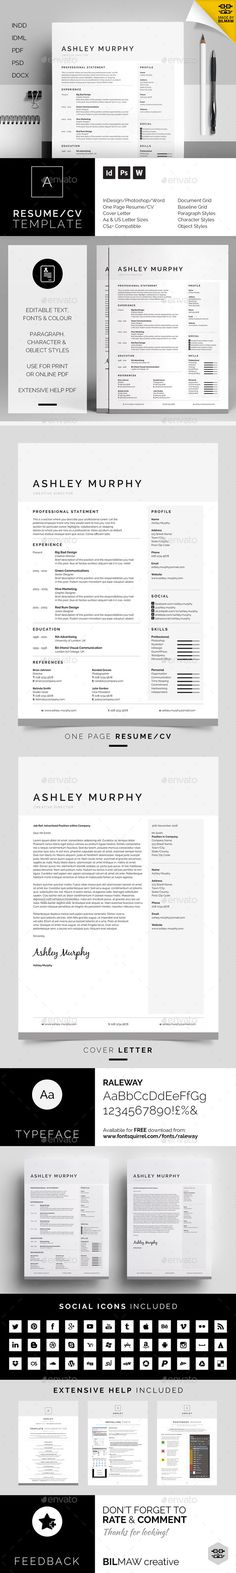 Resume Cv template, Resume cv and Photoshop illustrator - feedback template word